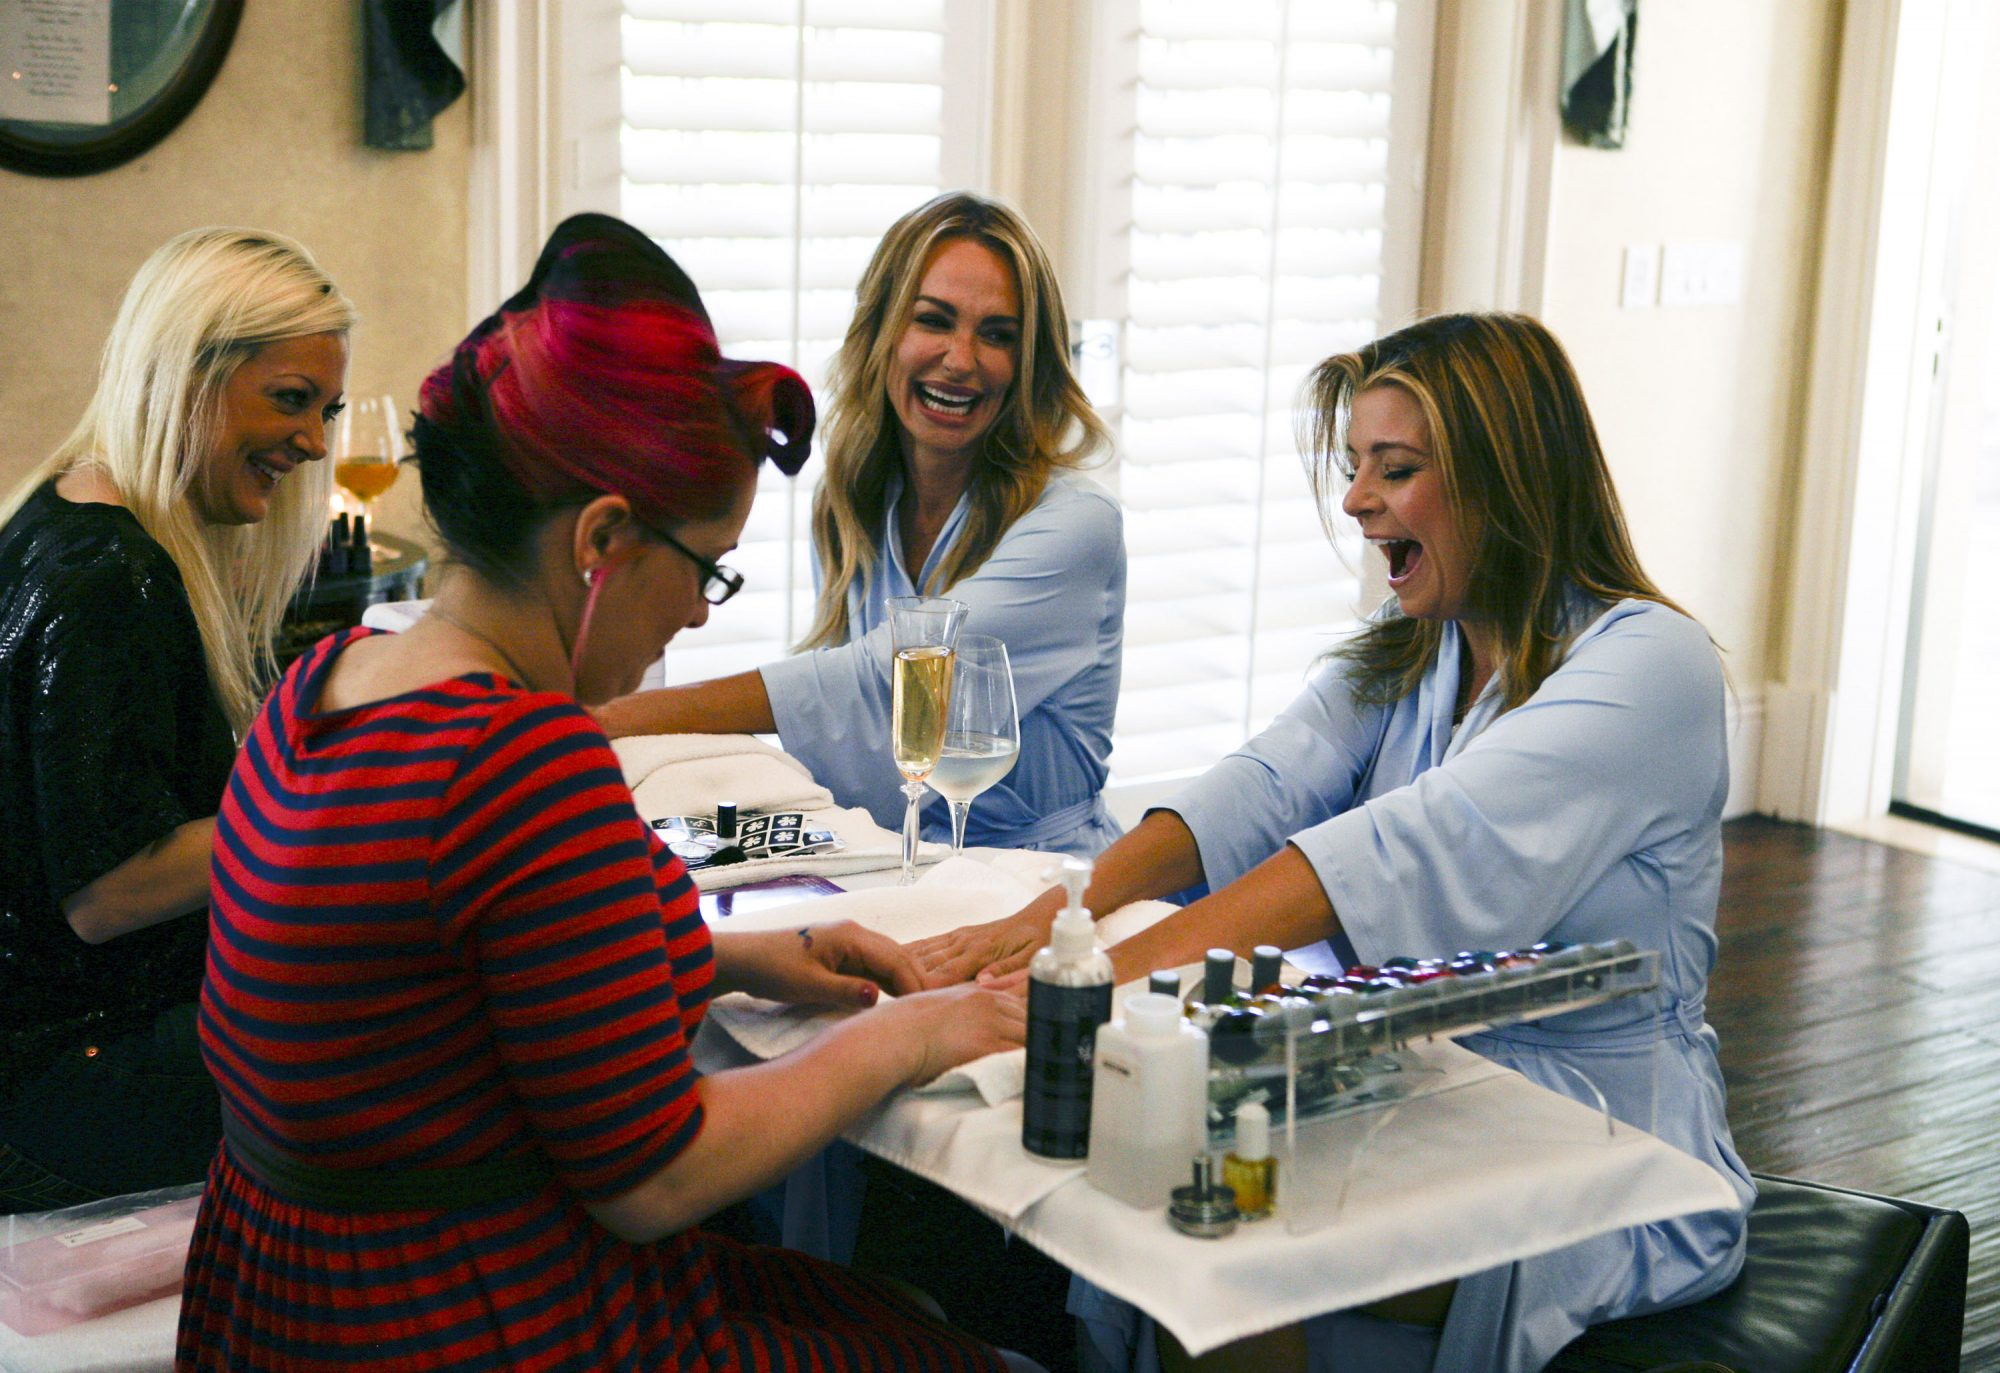 Our Favorite Fall Party Theme Ideas - Spa Day Party